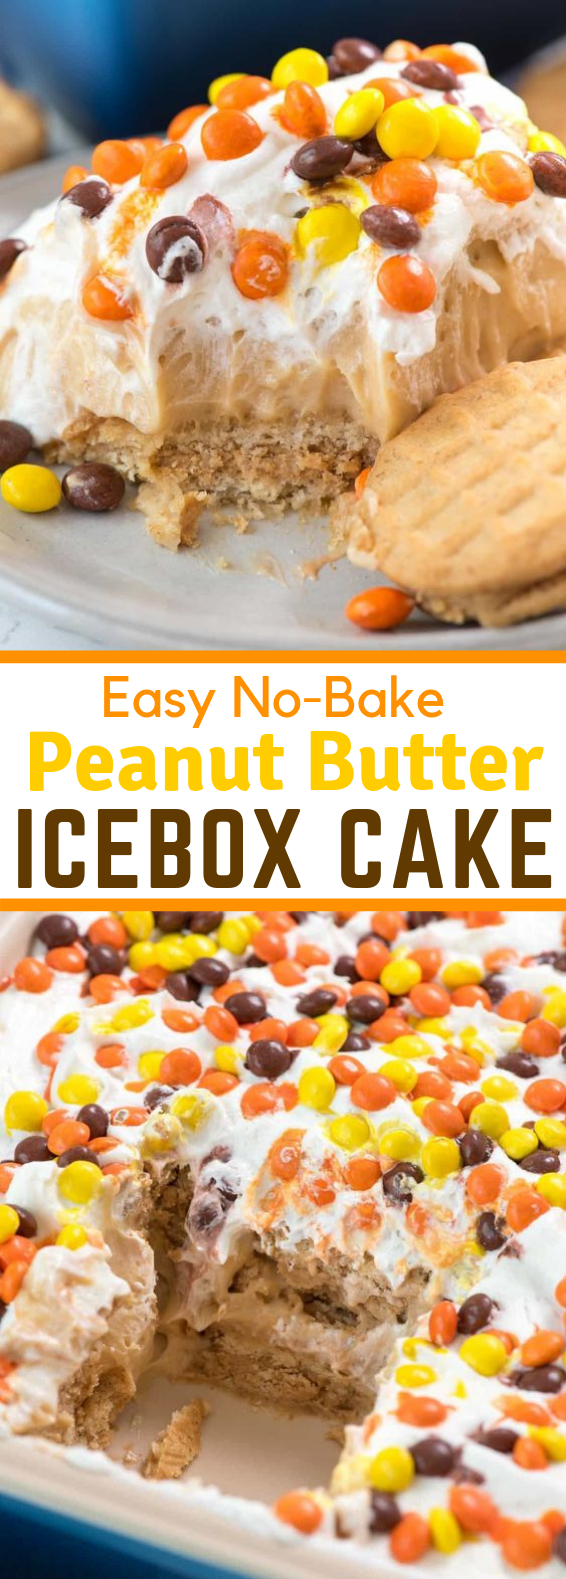 NO BAKE PEANUT BUTTER ICEBOX CAKE #desserts #sweets